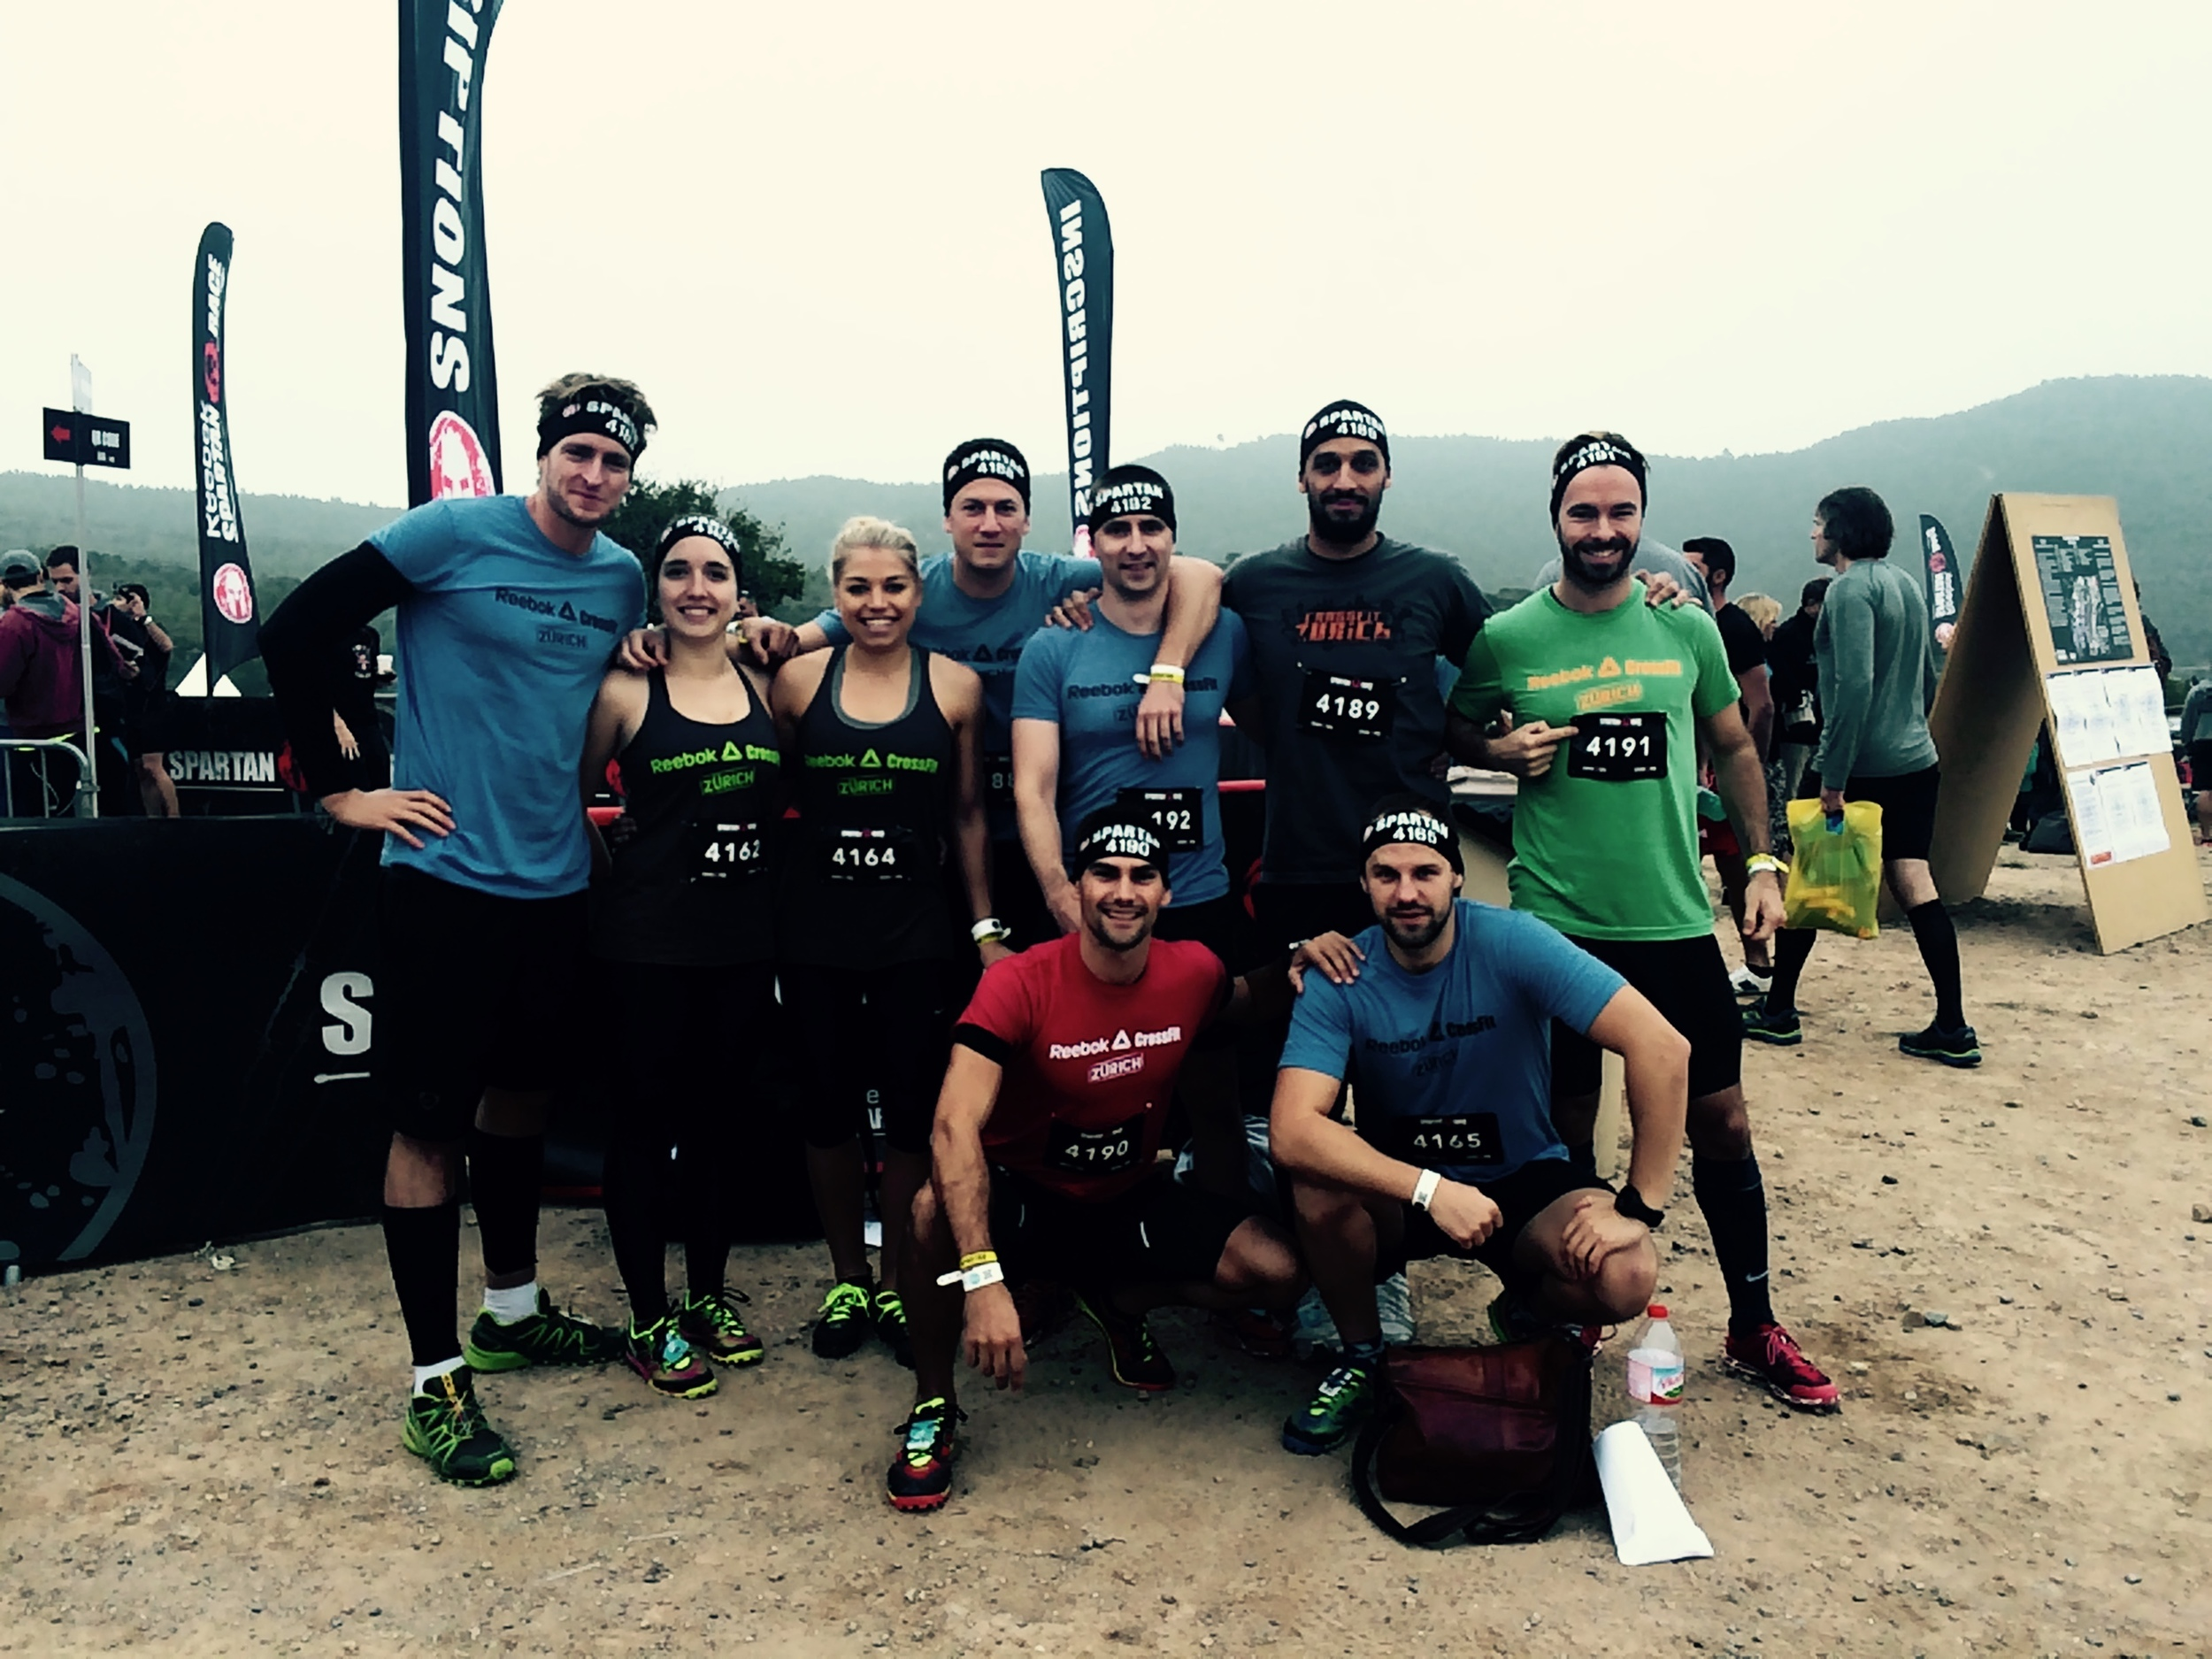 Before and after....Ralf, Cavide, Claudia, Max, Ben, Jamal, Andrew, Aitor and Edgar